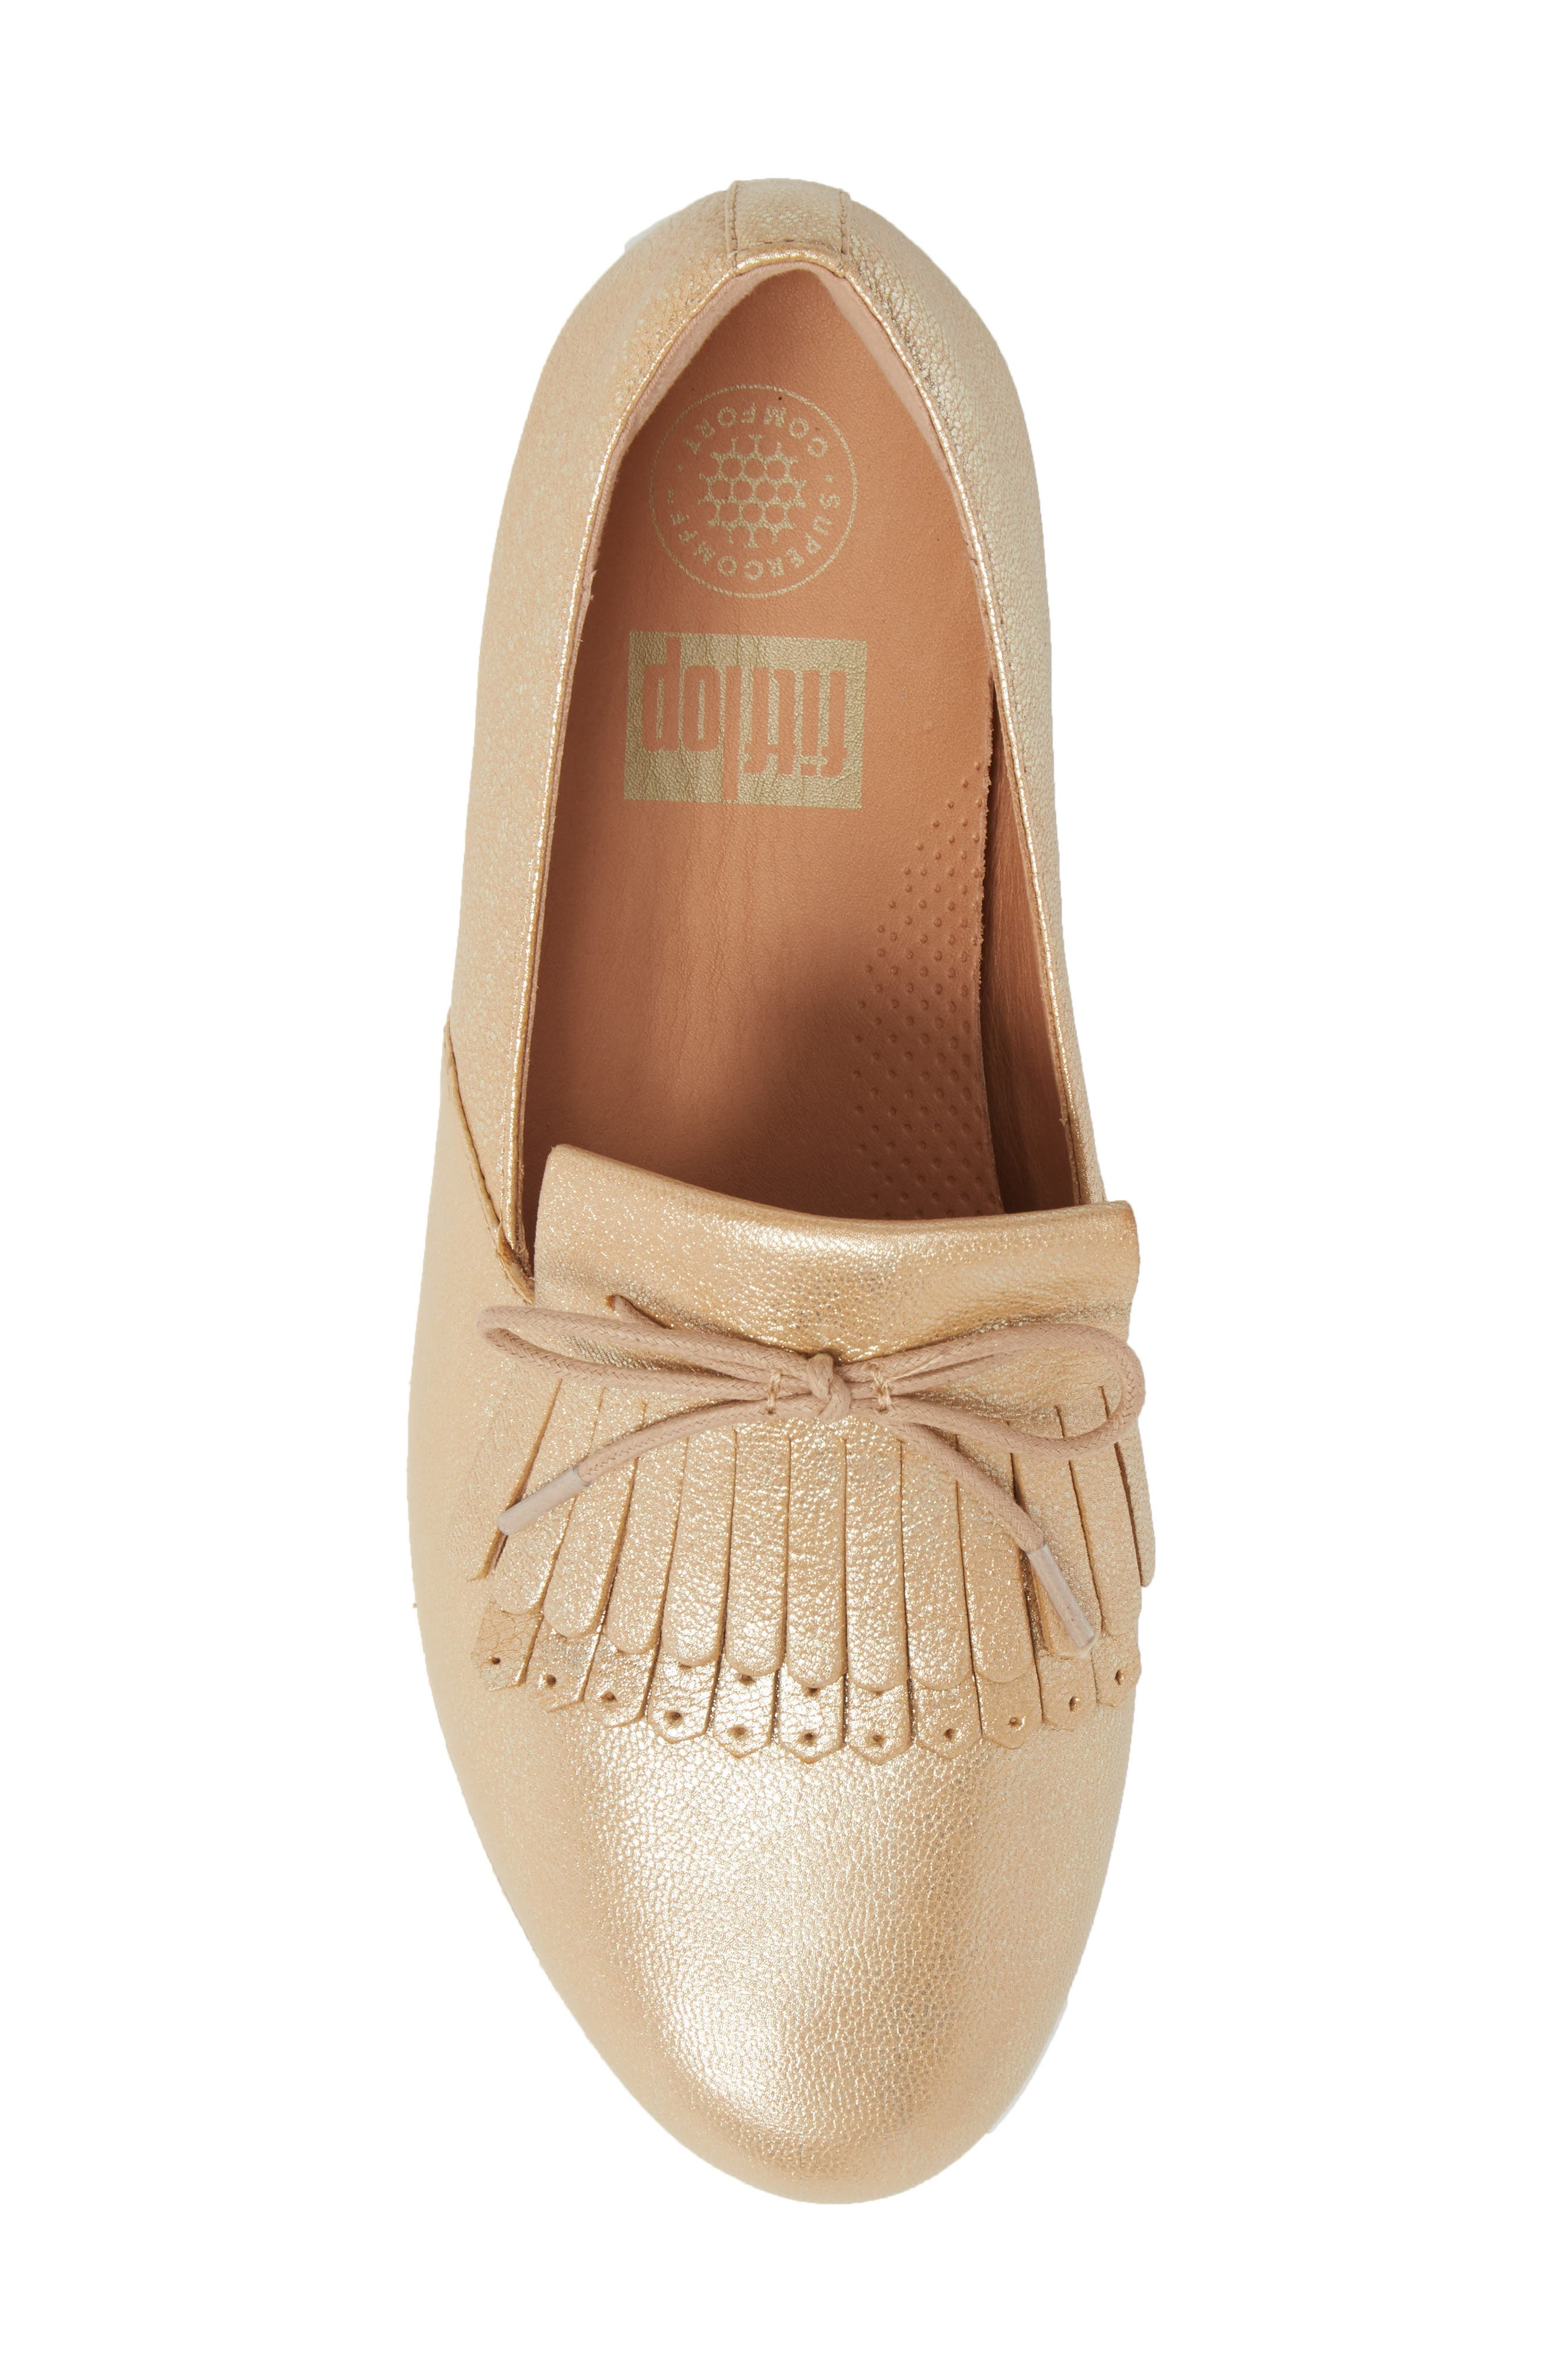 Superskate Fringe Loafer,                             Alternate thumbnail 5, color,                             Metallic Gold Leather